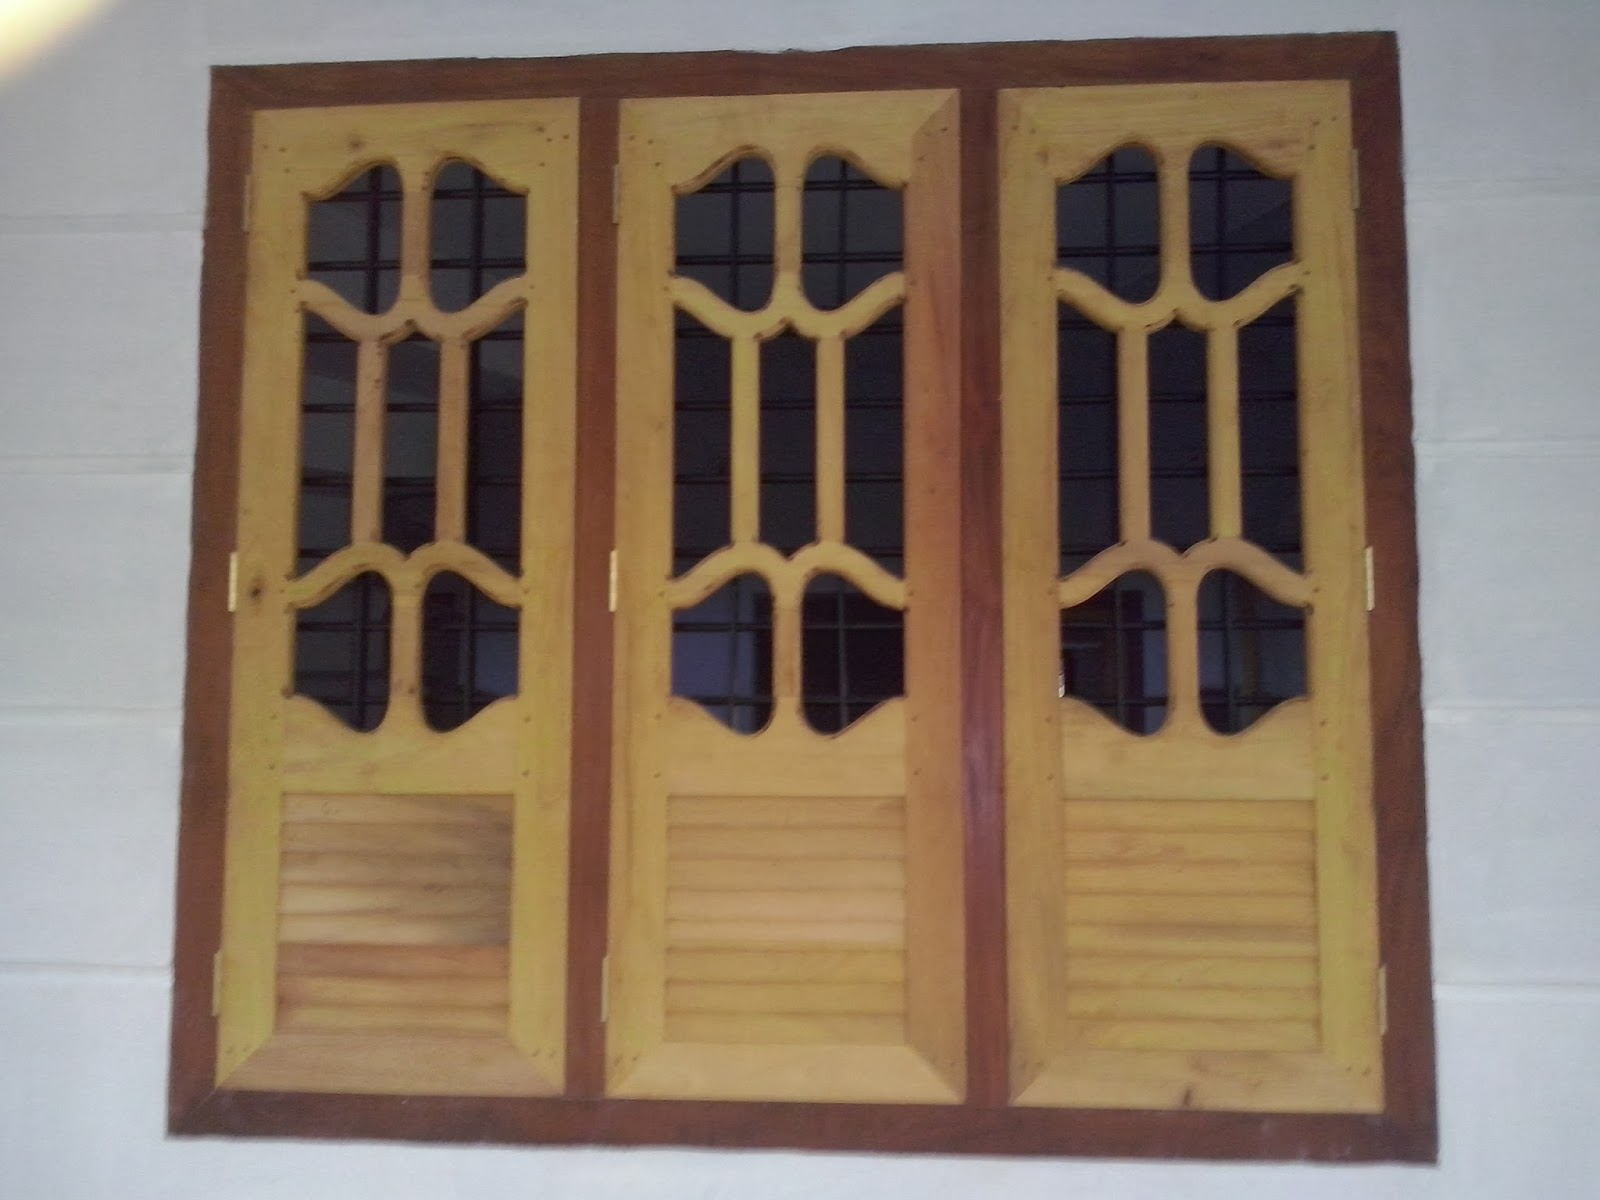 Bavas wood works window door design pictures for Window design wooden